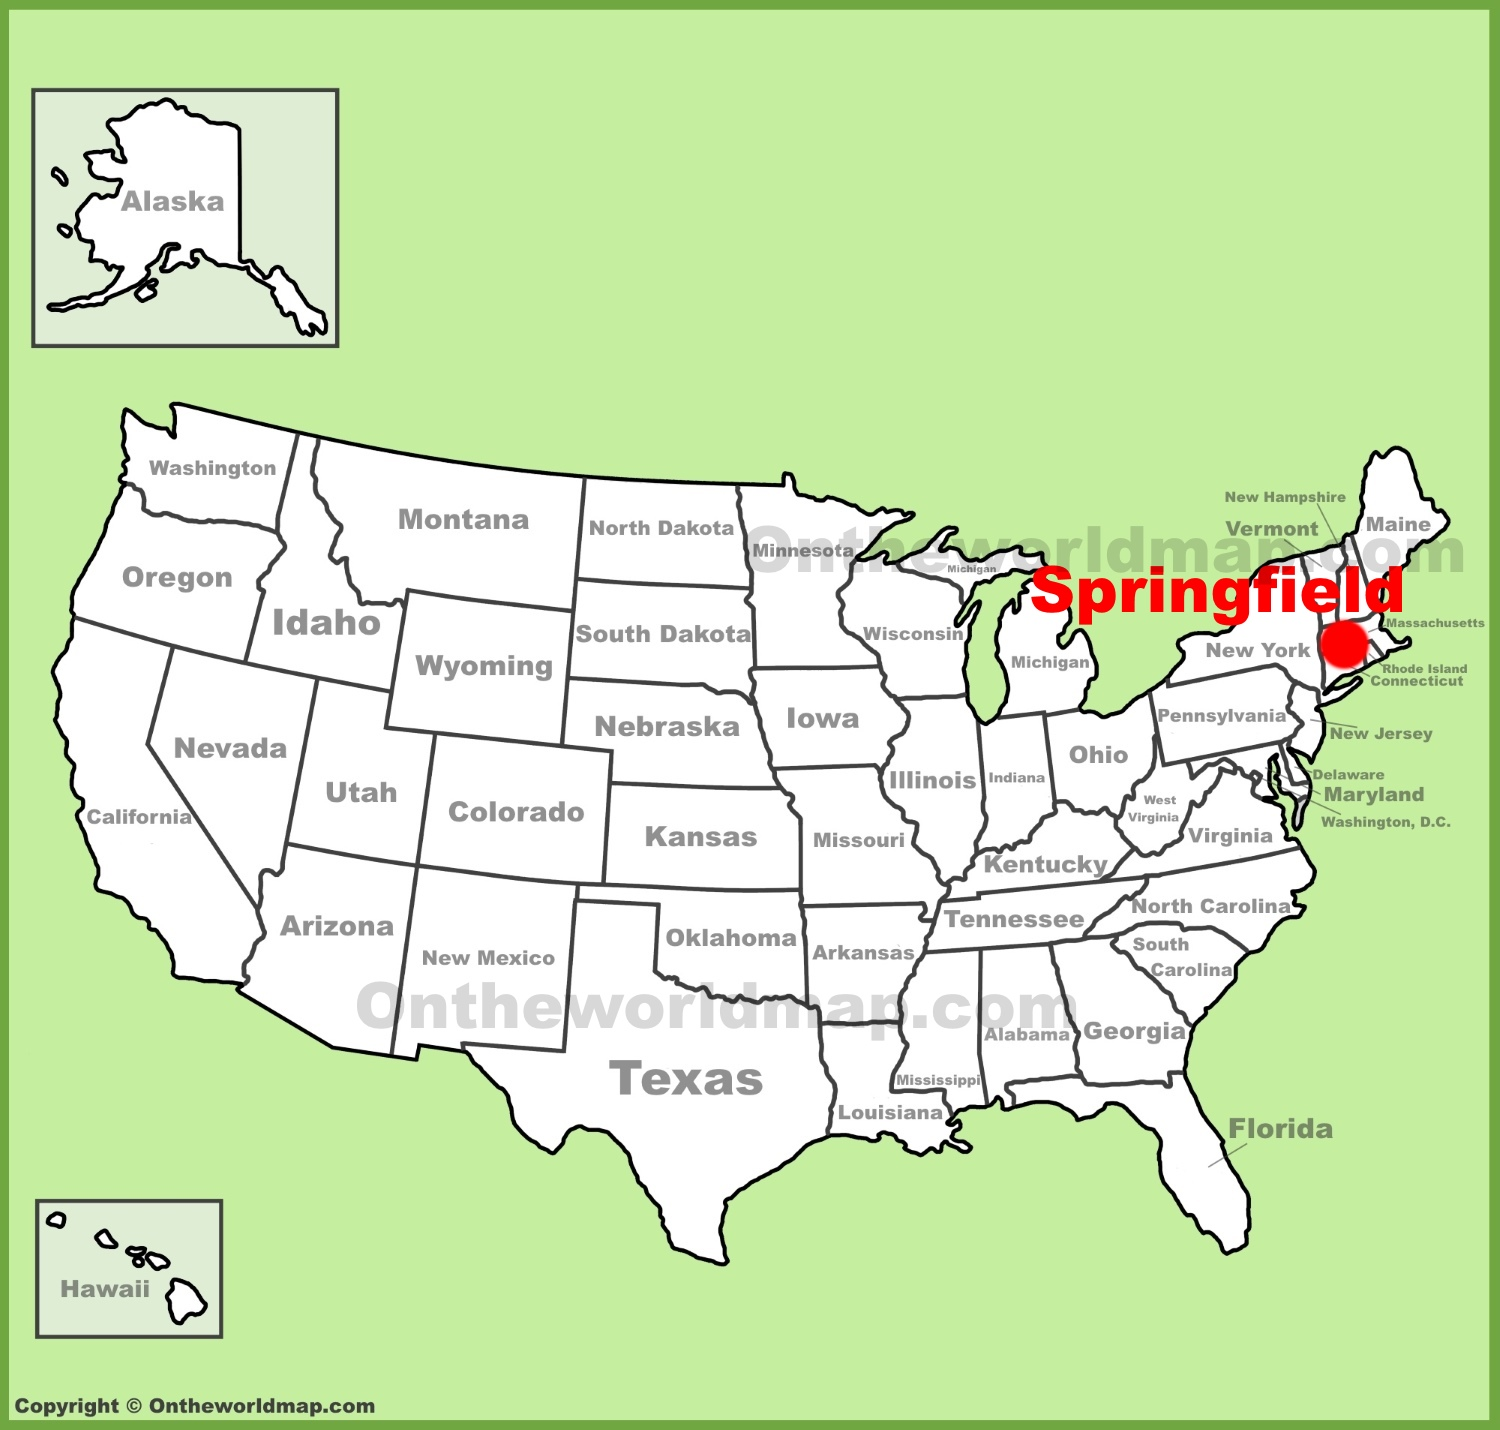 Springfield Ma Map Springfield (Massachusetts) location on the U.S. Map Springfield Ma Map